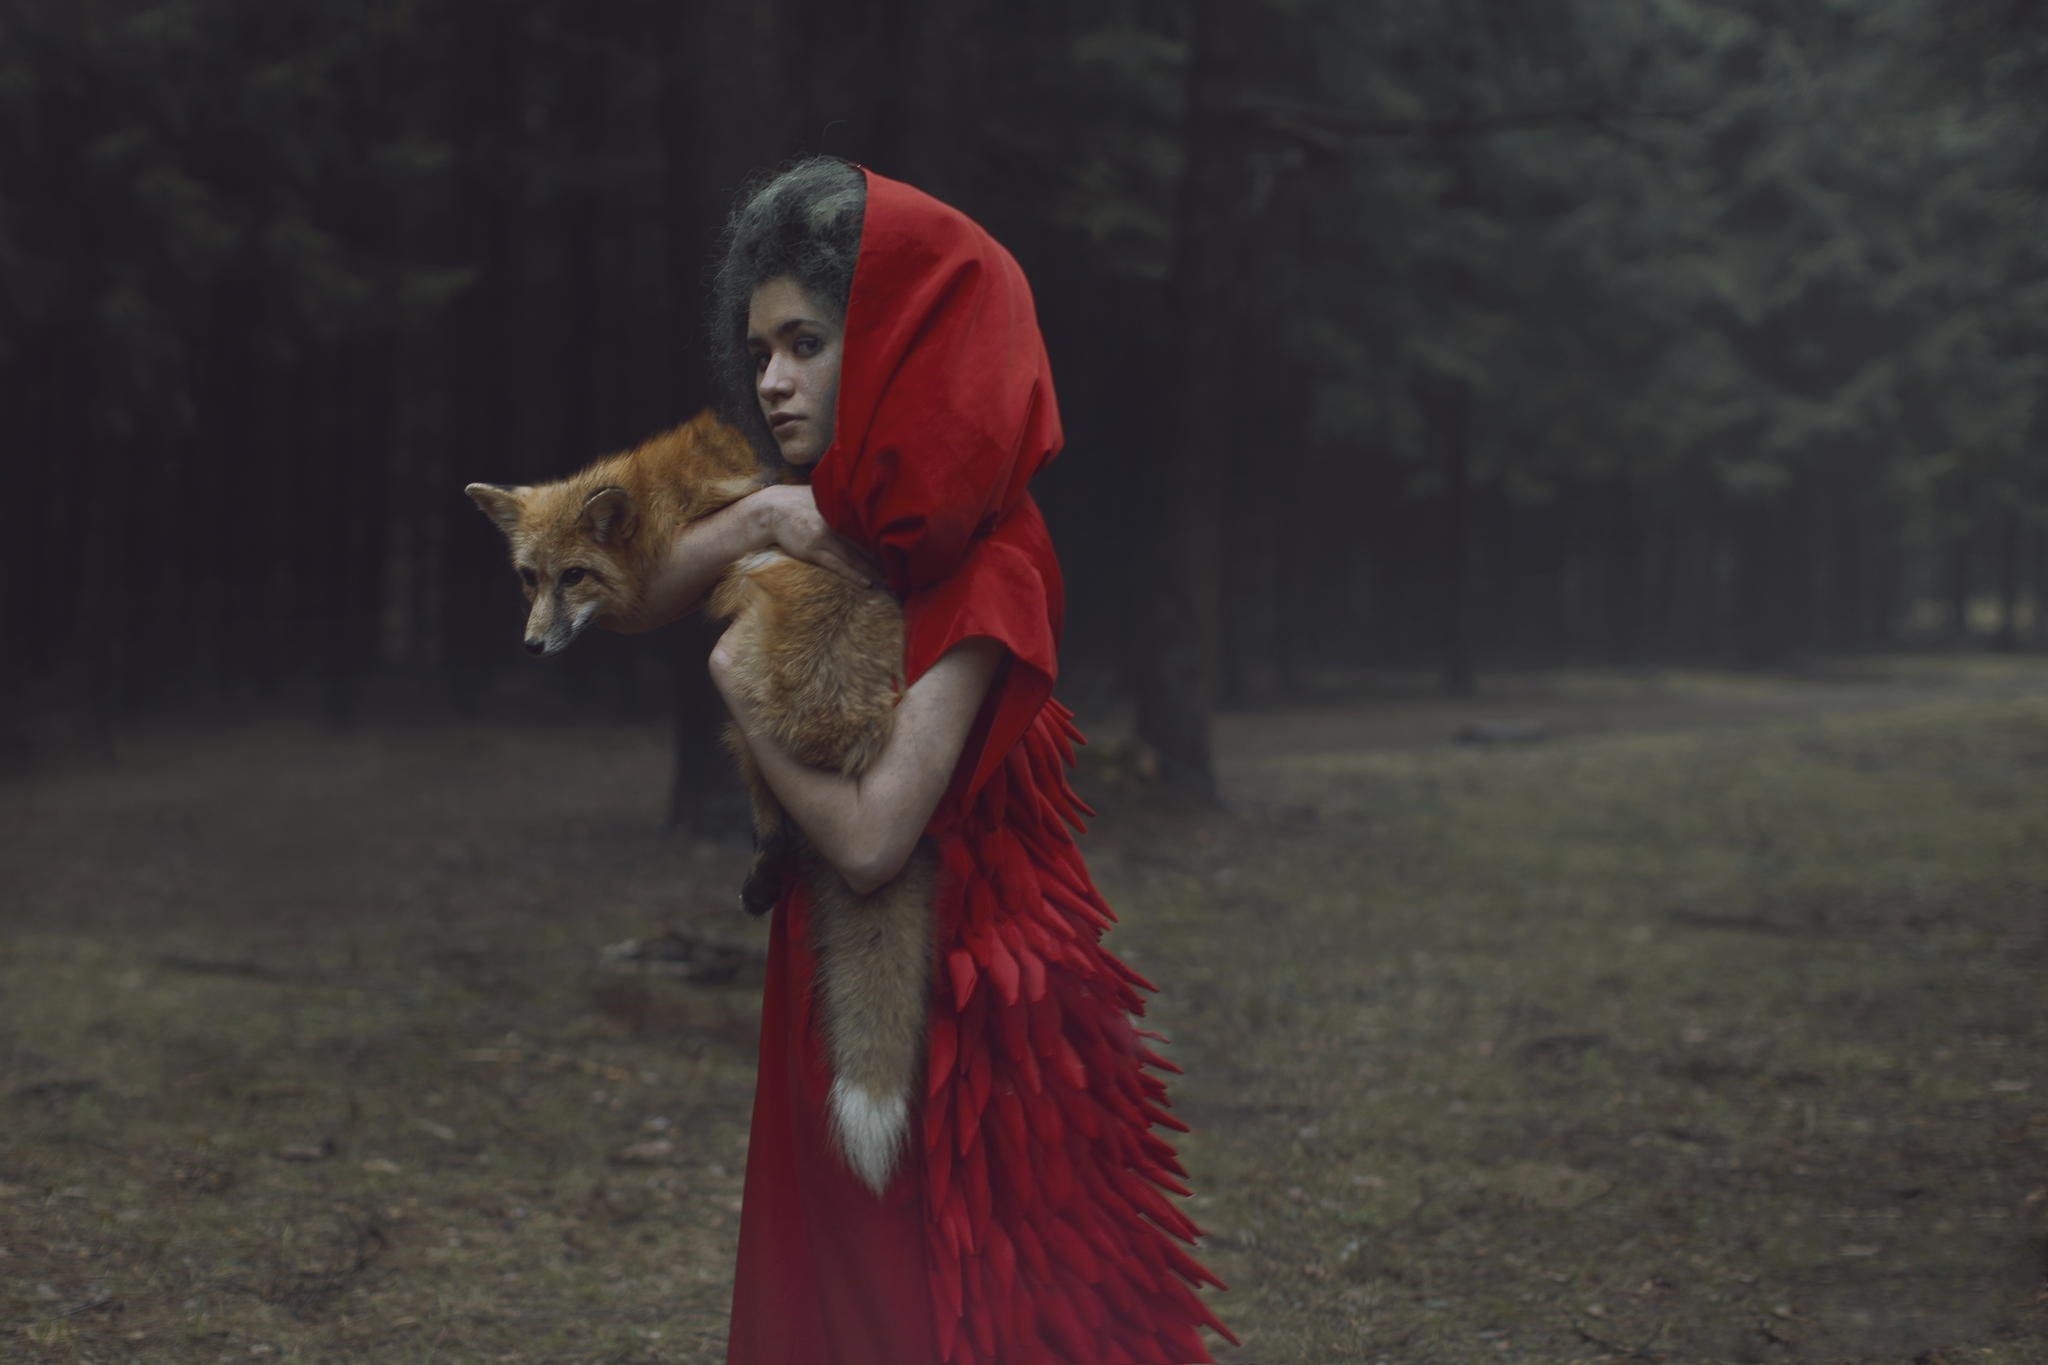 Photos by Russian photographer Katerina Plotnikova: Part 2 - 21